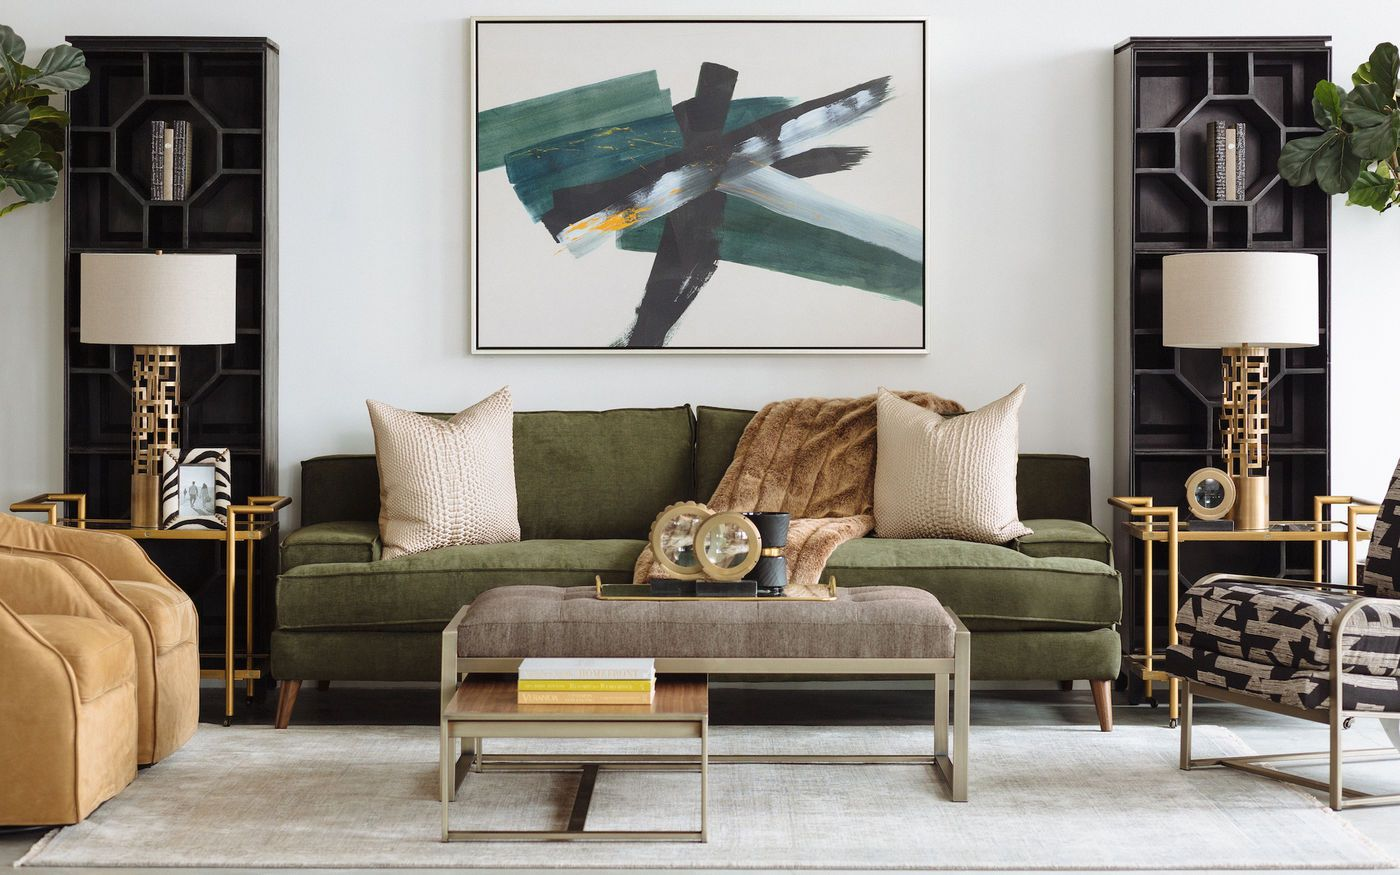 Modern Low Profile Plush Sofa In Forest Green Mathis Brothers Furniture Green Couch Living Room Green Sofa Decor Green Sofa Living Room #plush #living #room #furniture